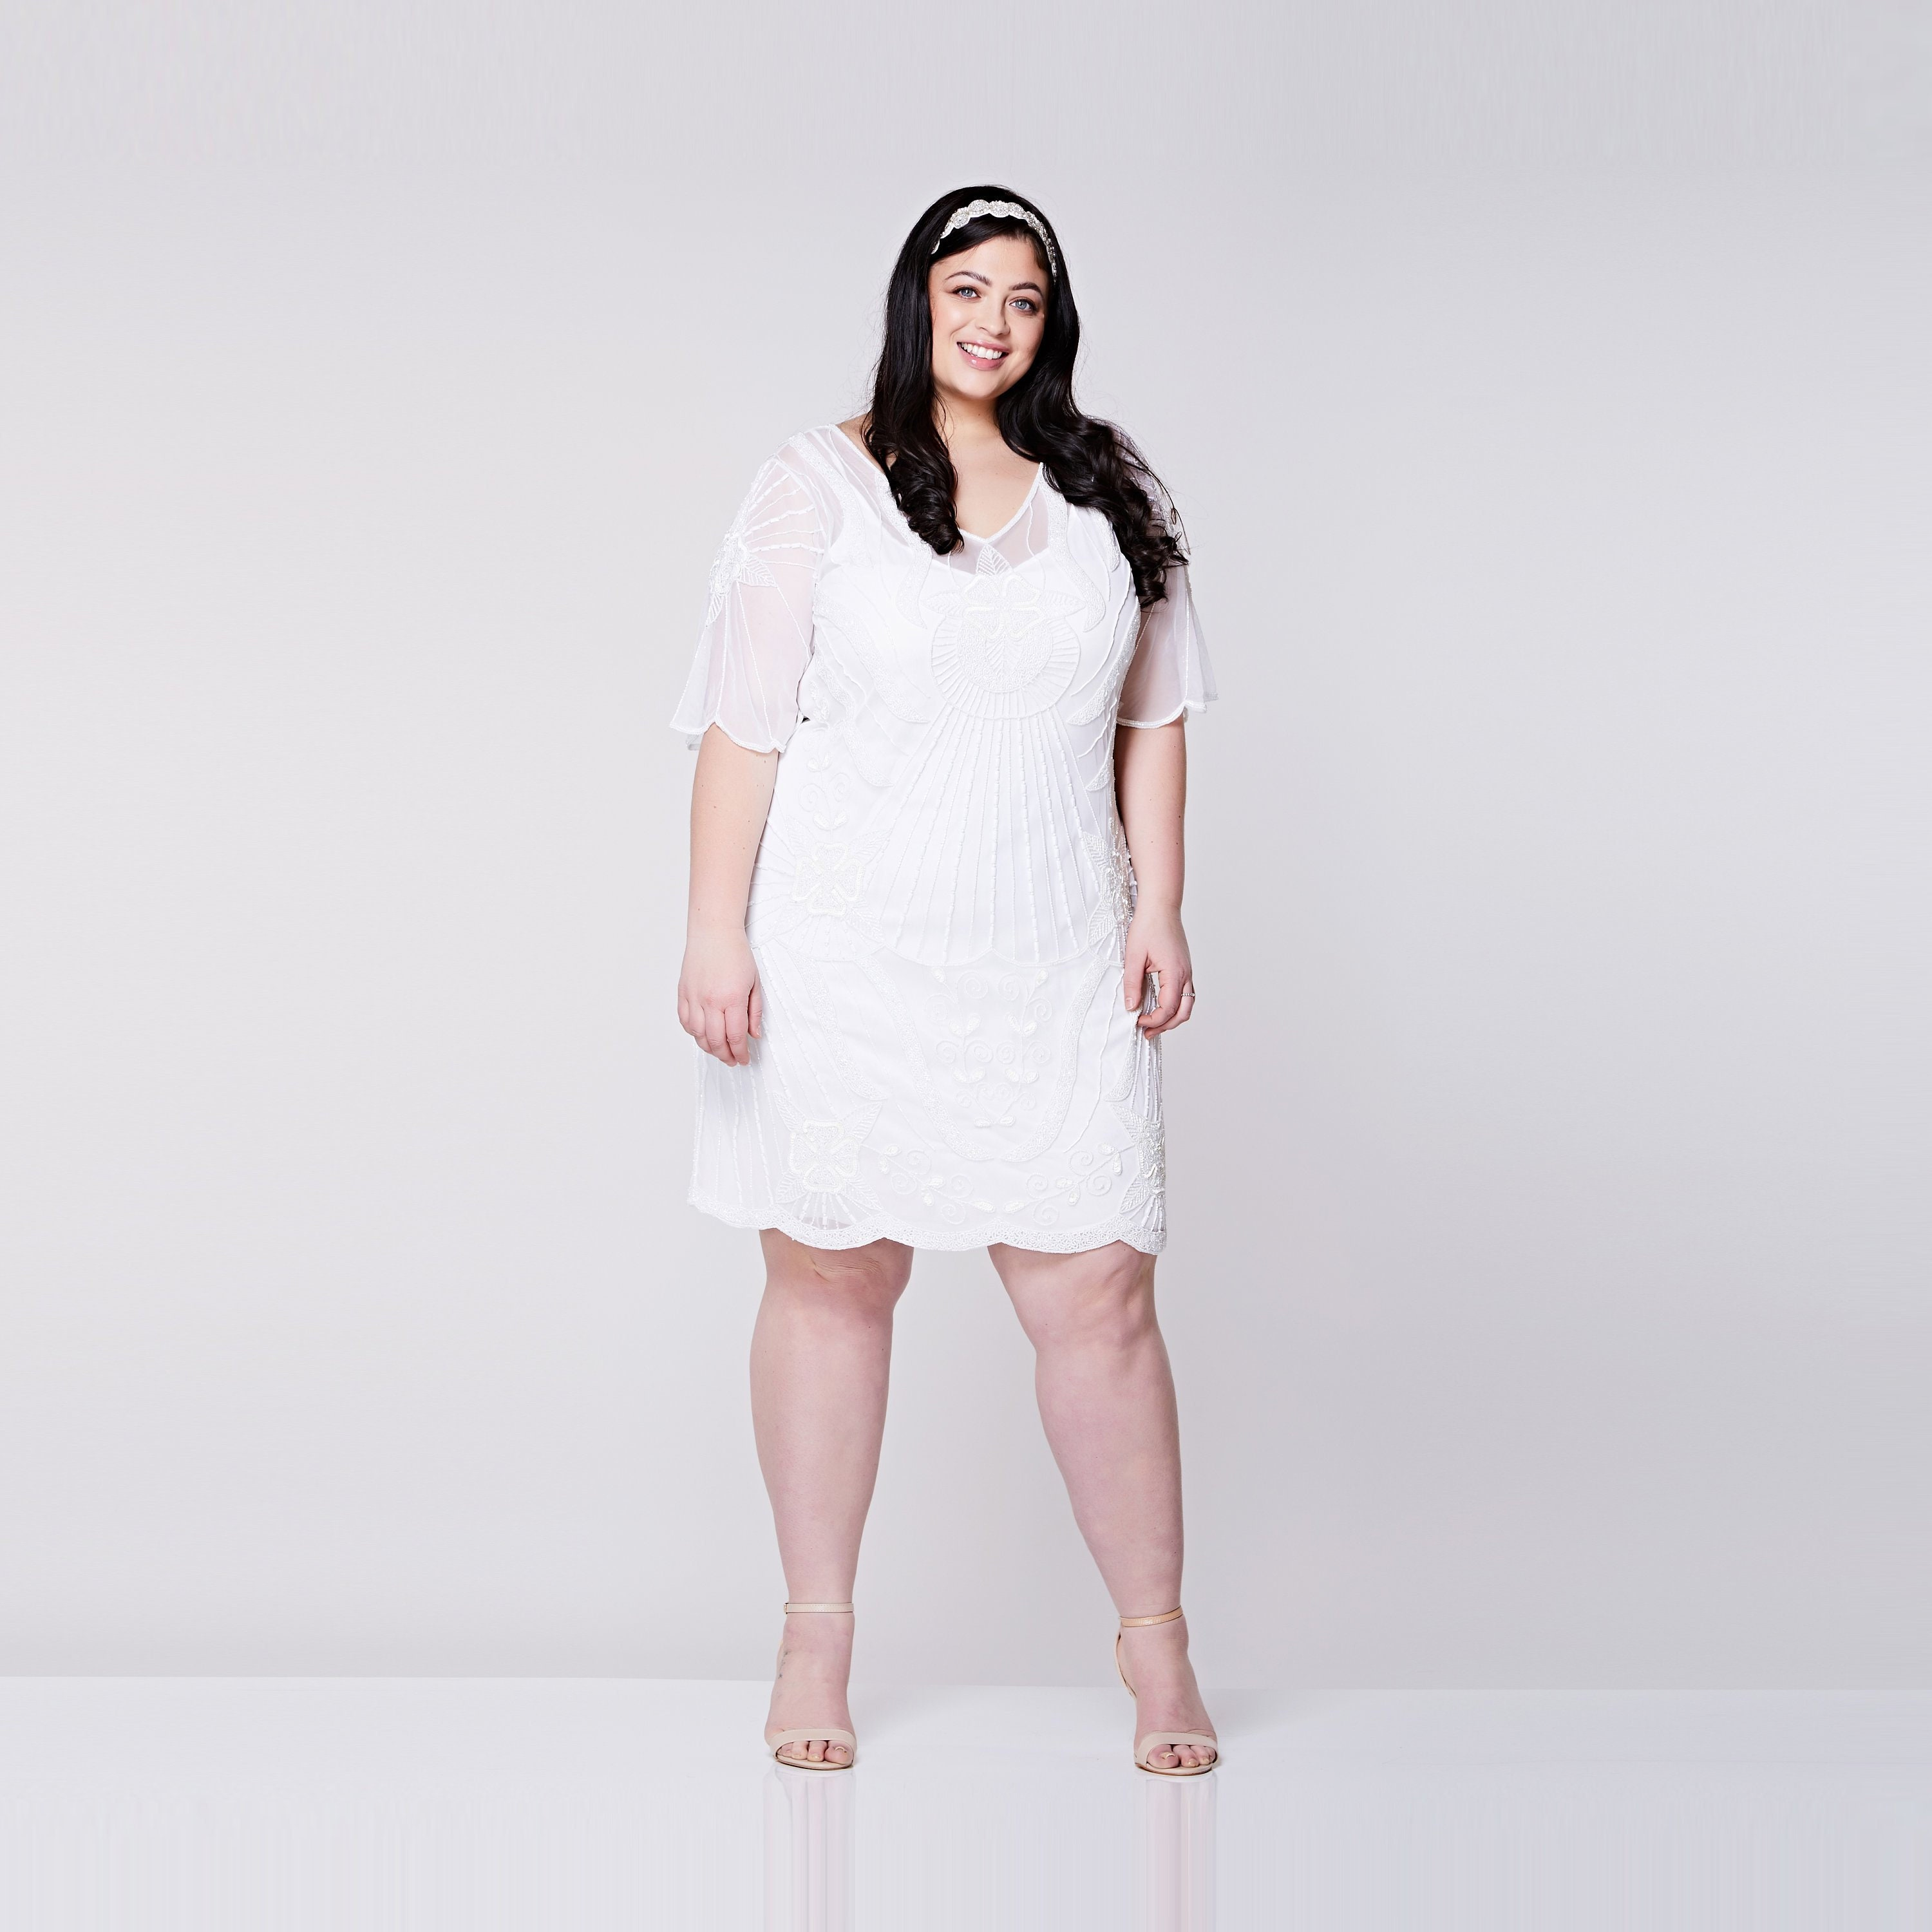 Plus size Kate White Flapper Dress Slip Included 1920s Great ...